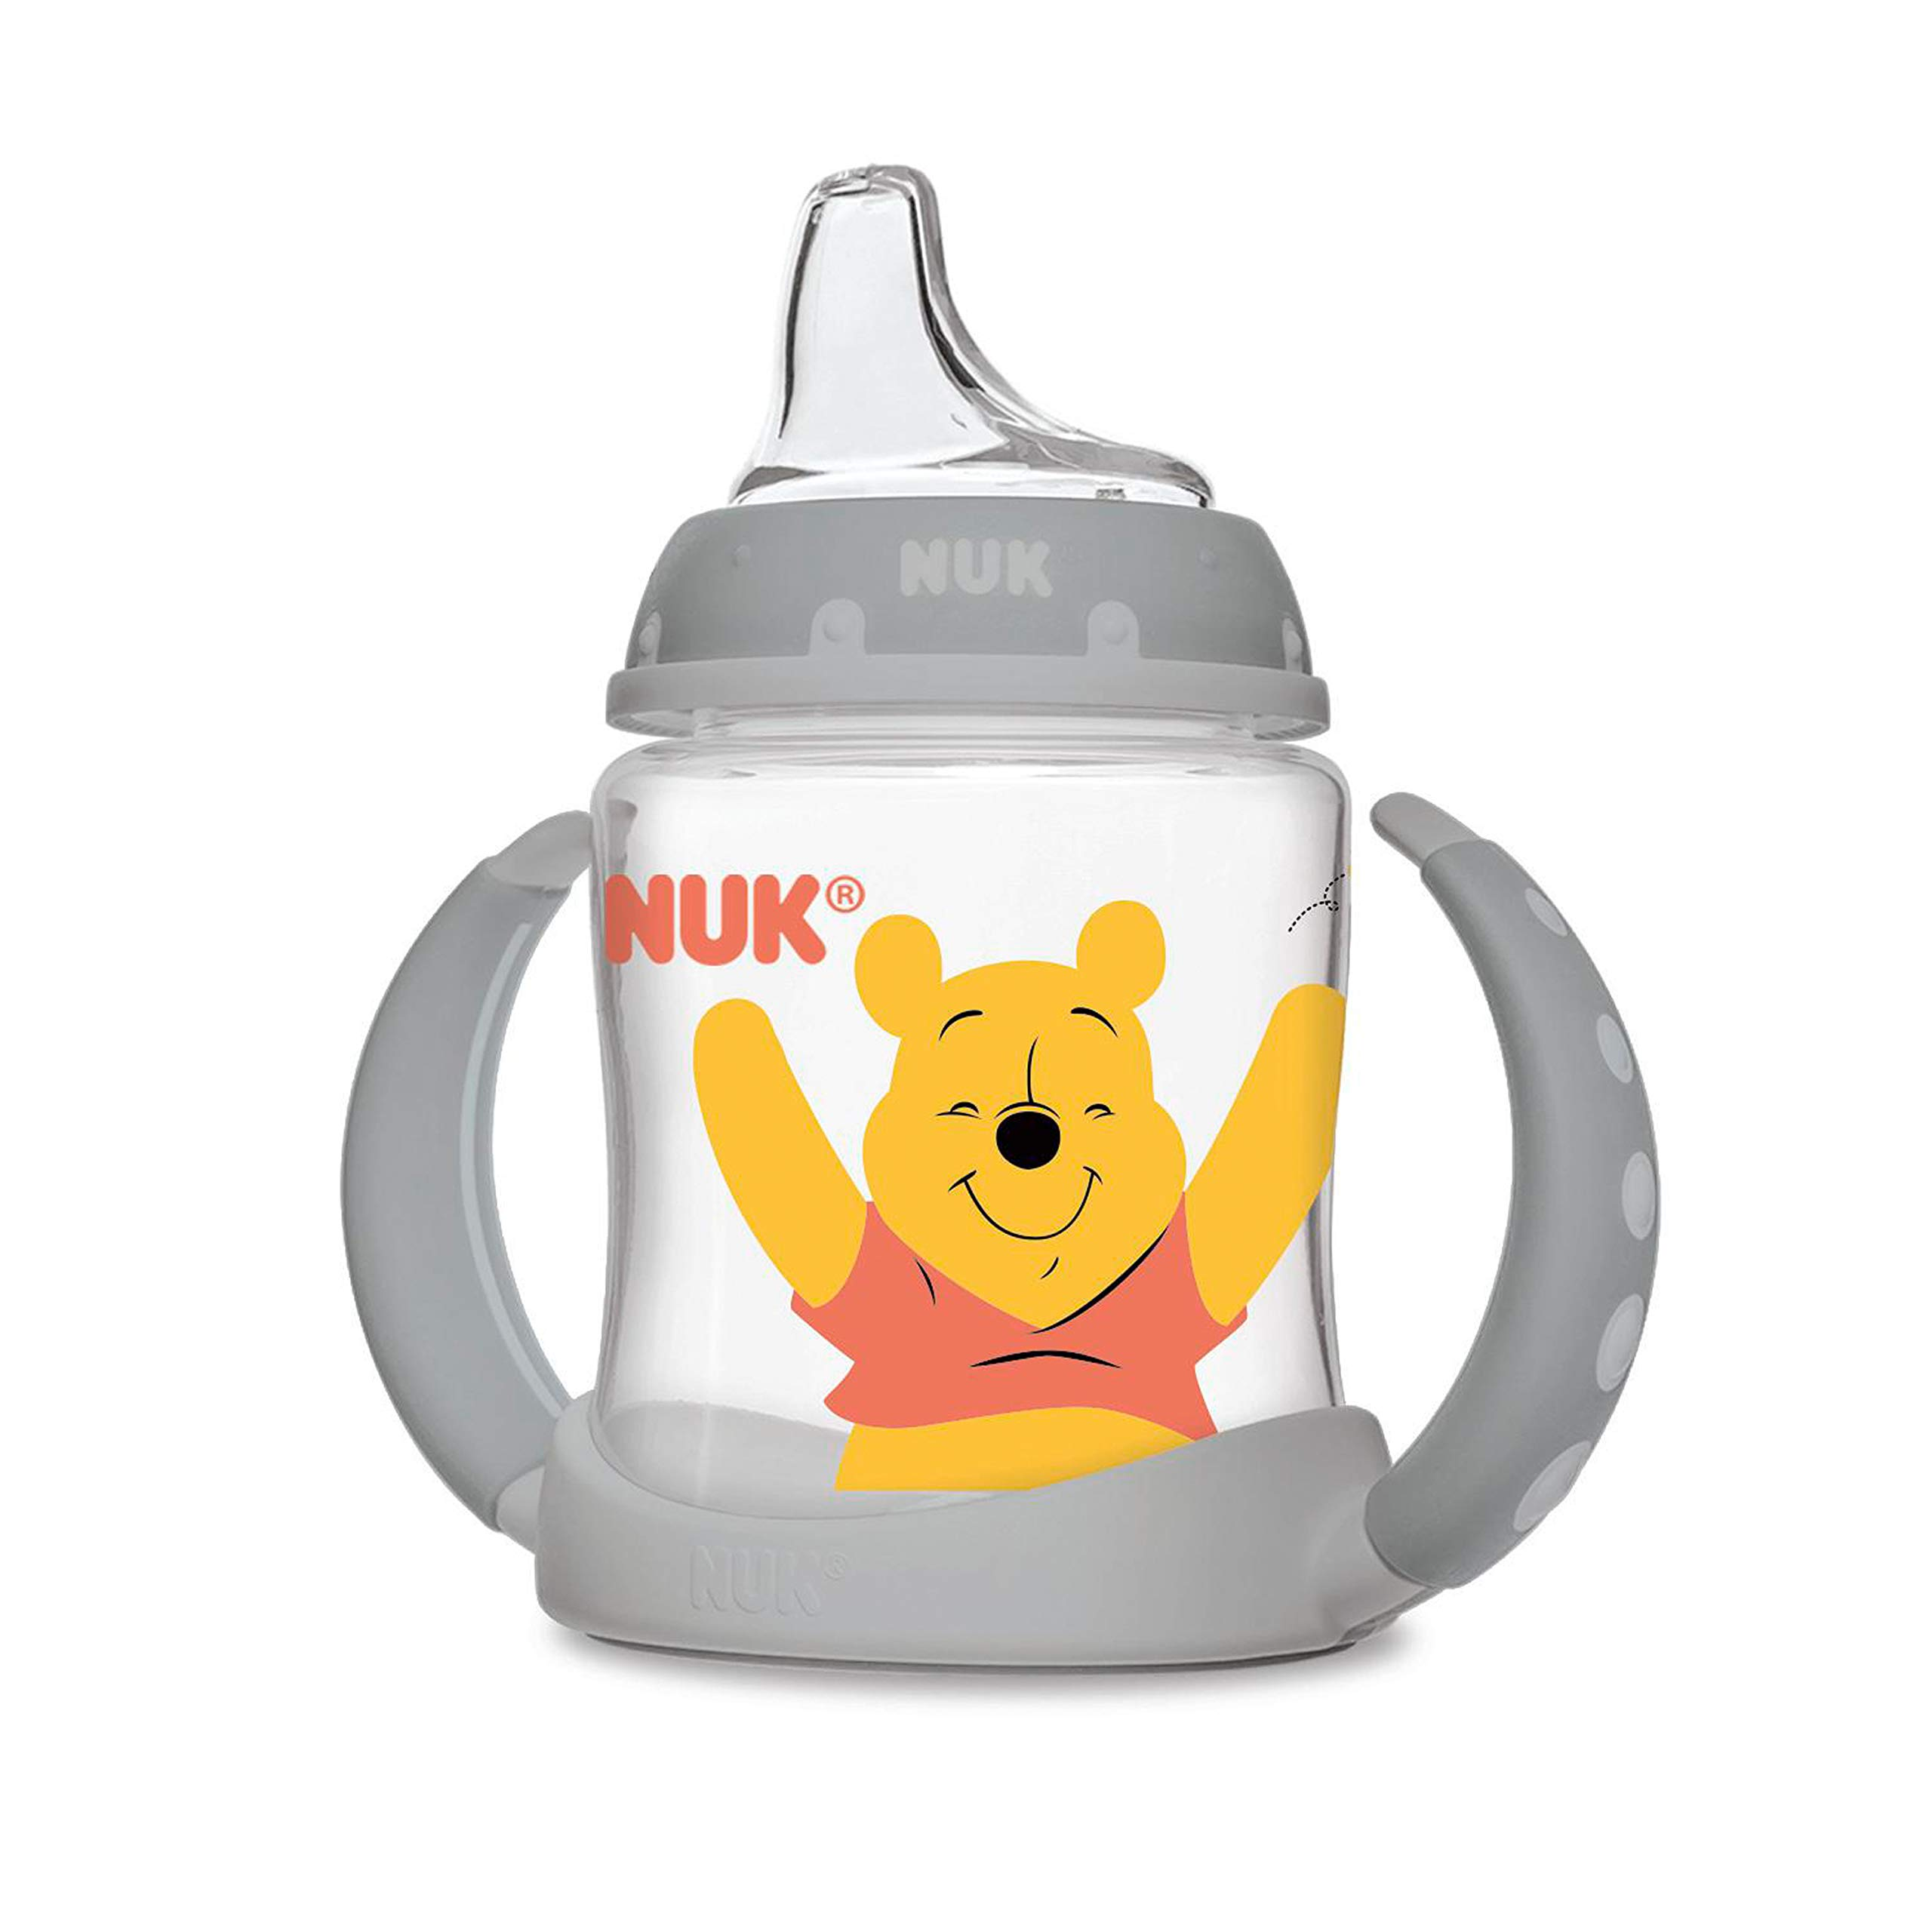 NUK Disney Learner Sippy Cup, Winnie The Pooh, 5oz 1pk (Colors may vary) by NUK